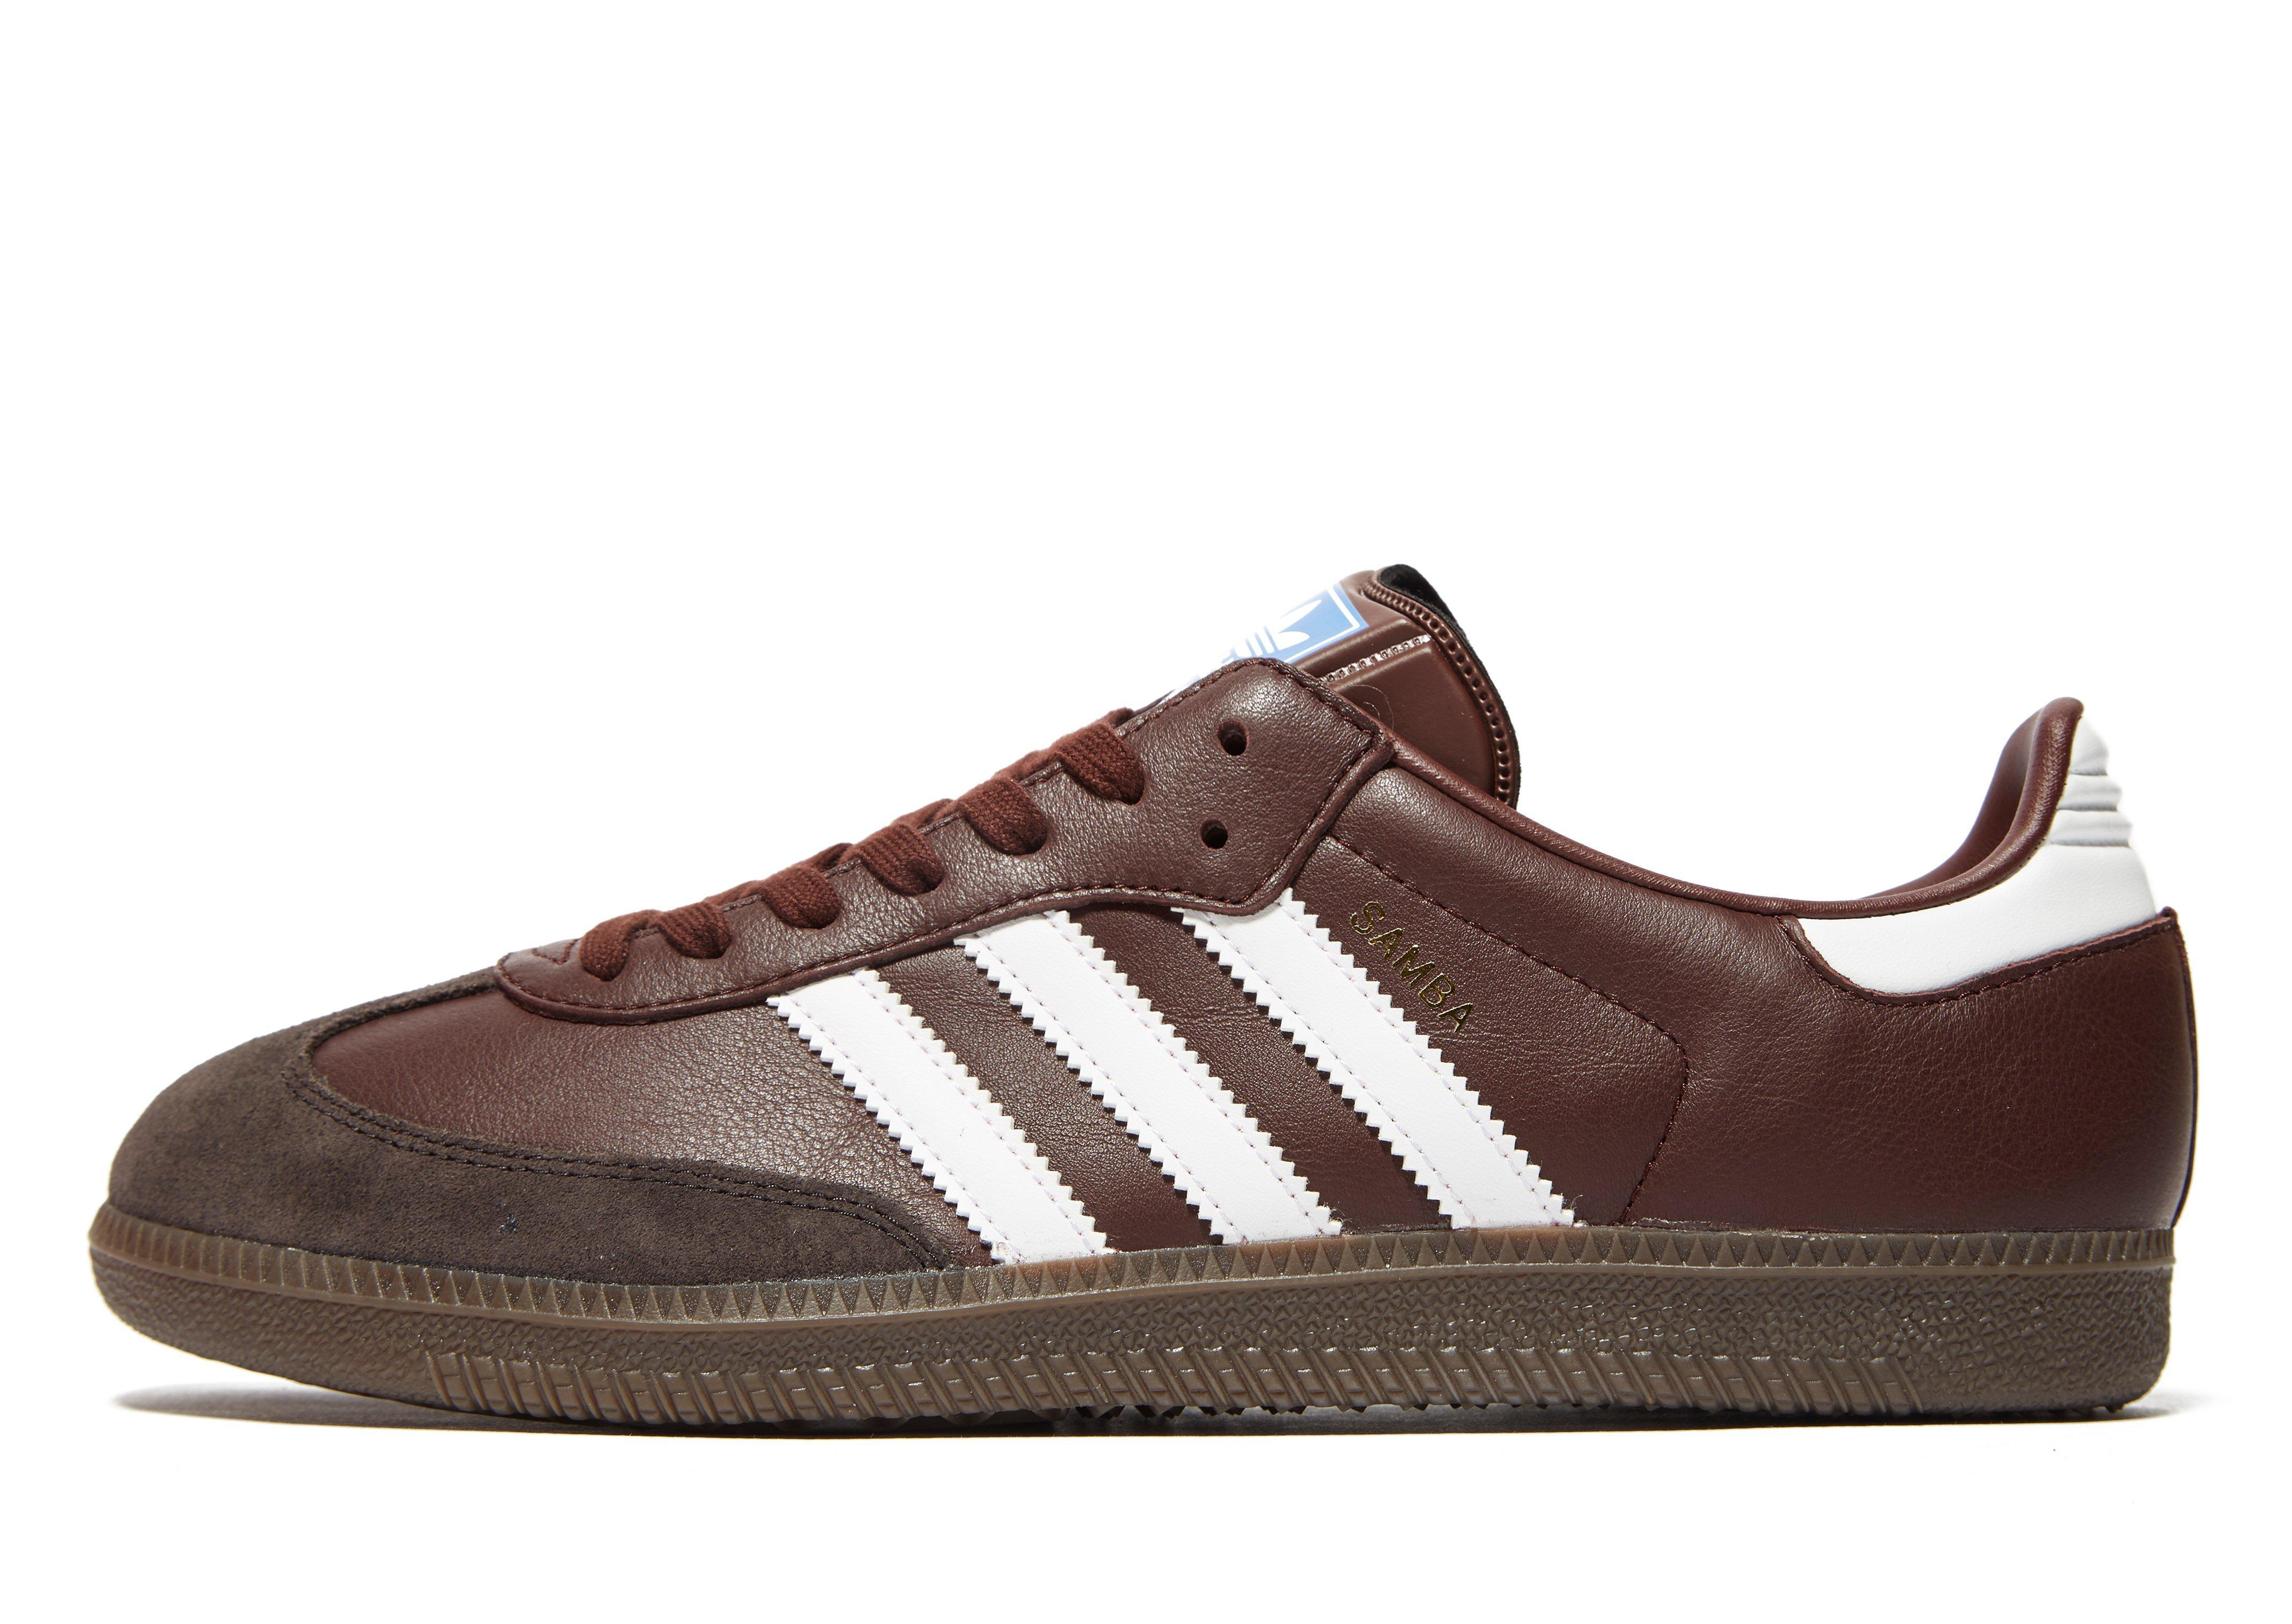 Adidas Shoes Brown Colour